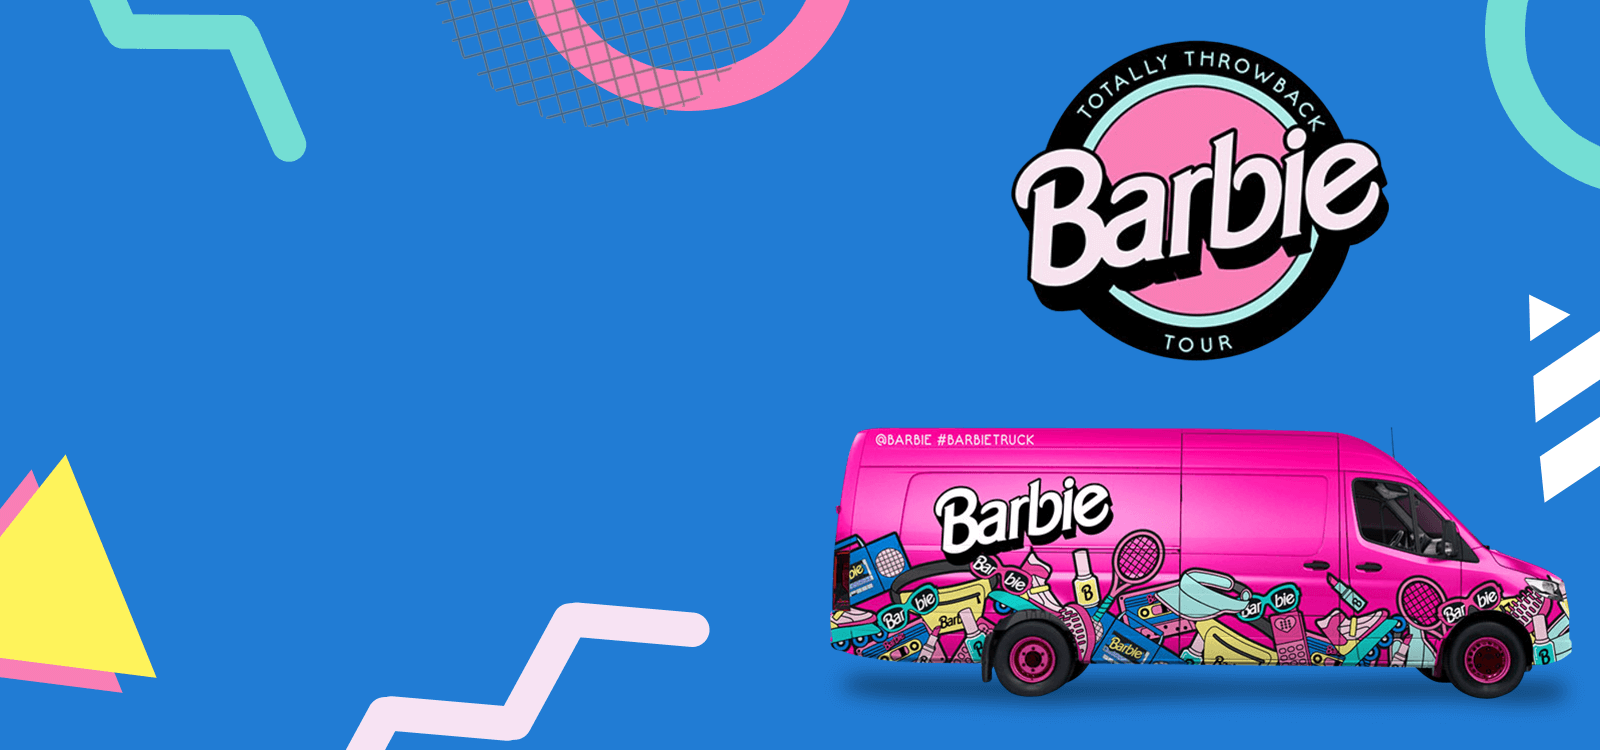 Barbie Truck Totally Throwback Tour